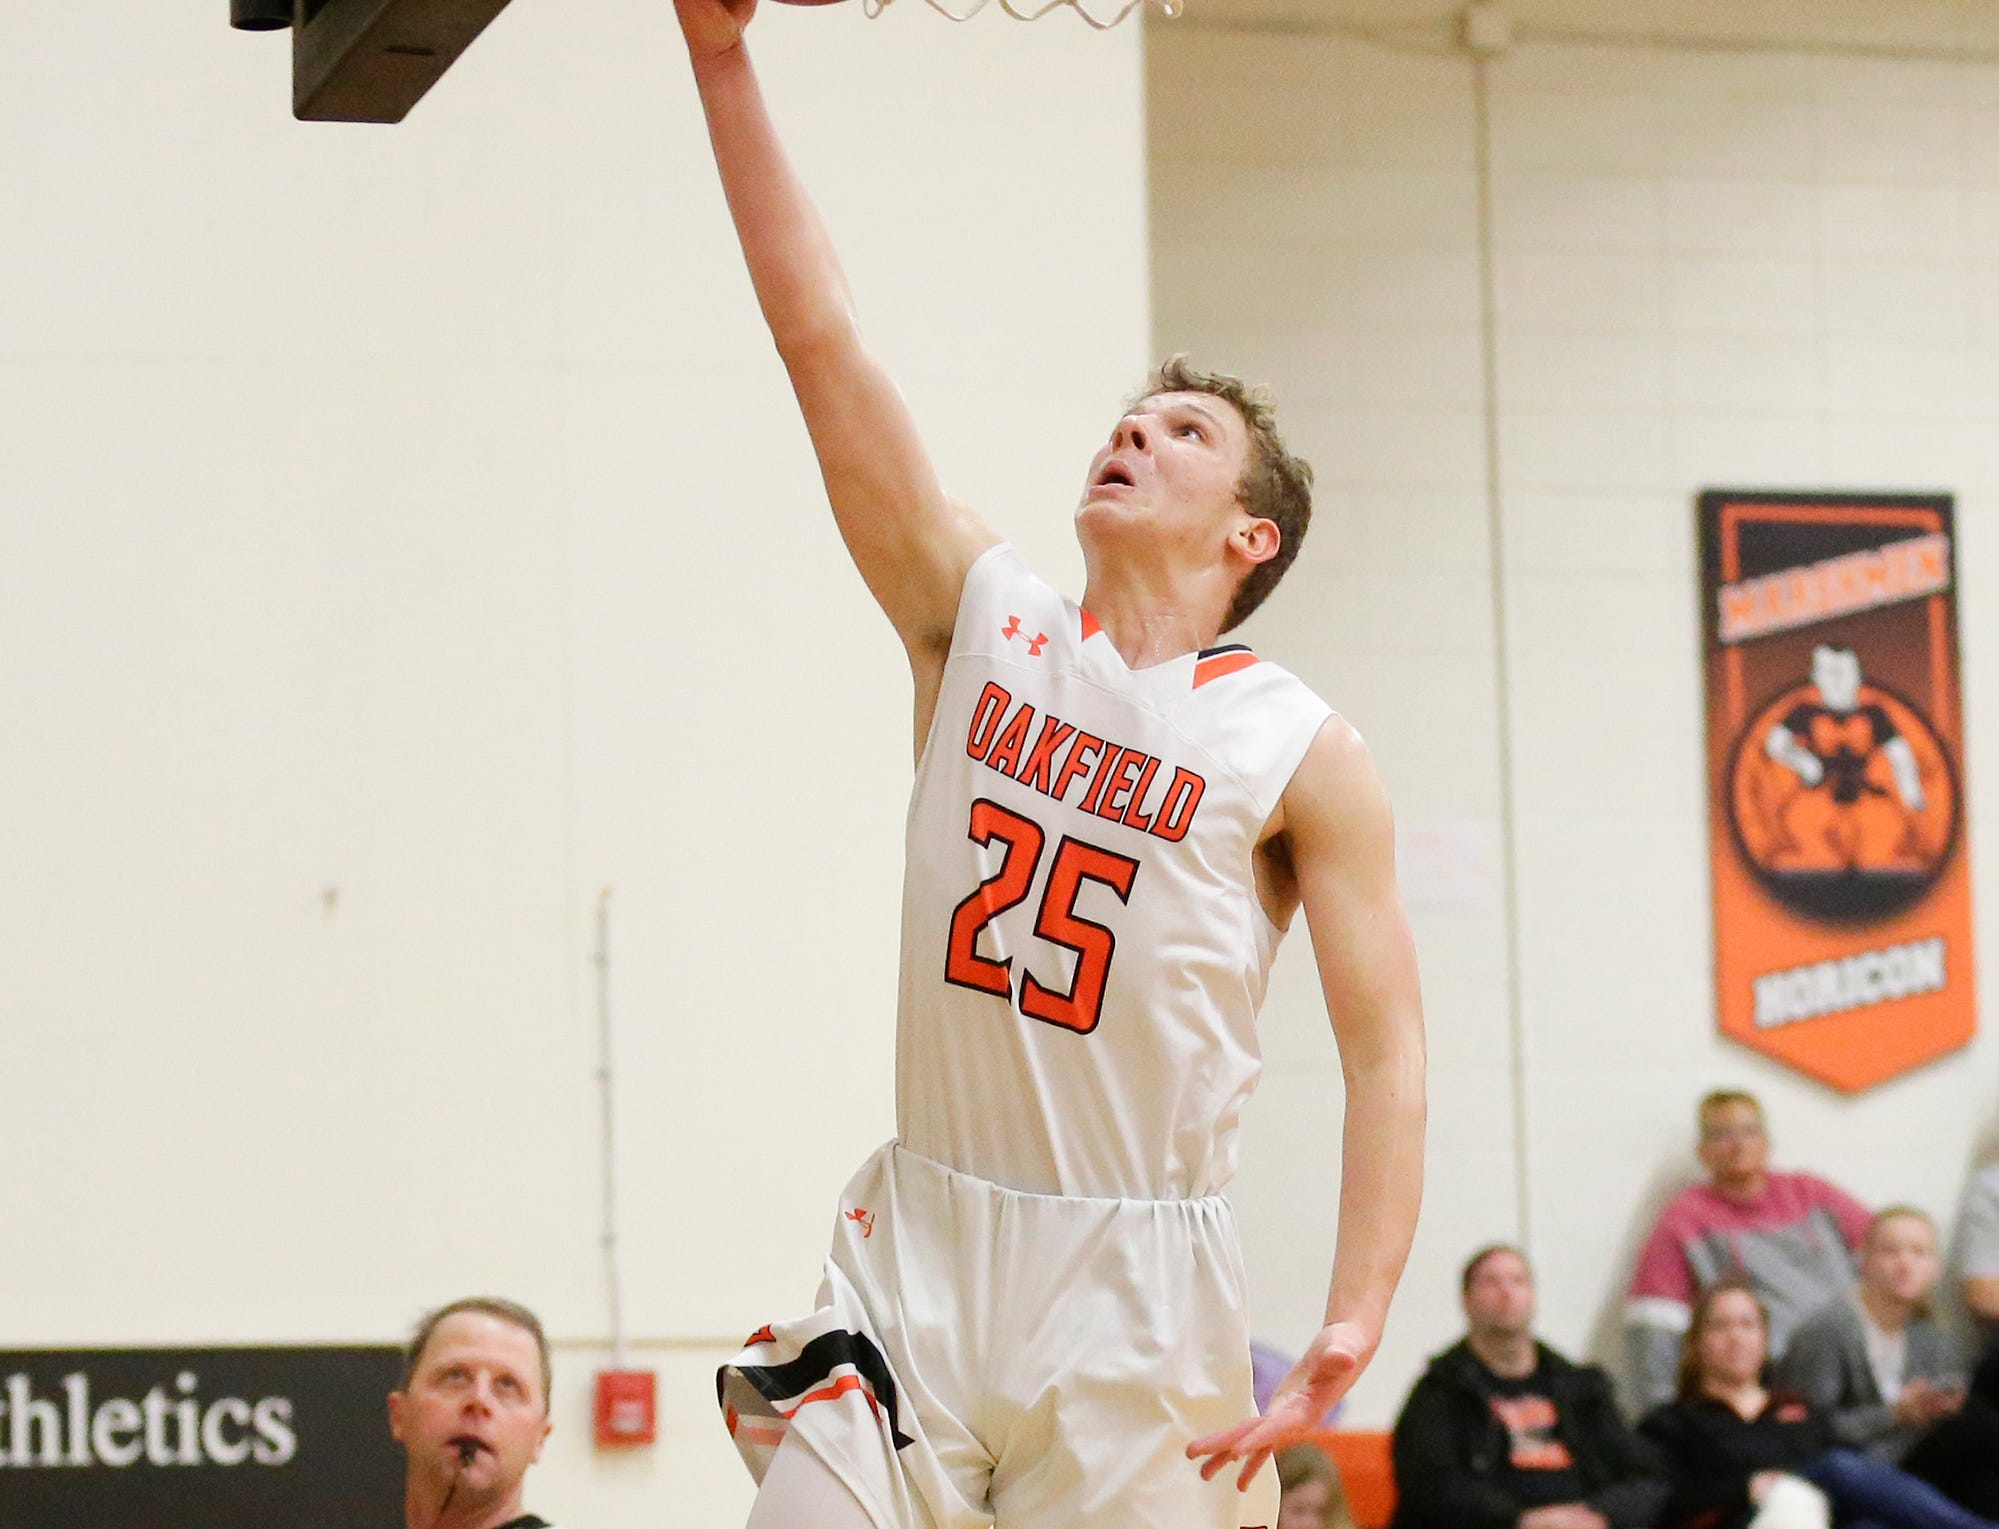 Oakfield High School boys basketball's Grant Bass goes up for a basket against Lourdes Academy of Oshkosh during their game Thursday, January 24, 2019 in Oakfield. Lourdes Academy won the game 83-48. Doug Raflik/USA TODAY NETWORK-Wisconsin